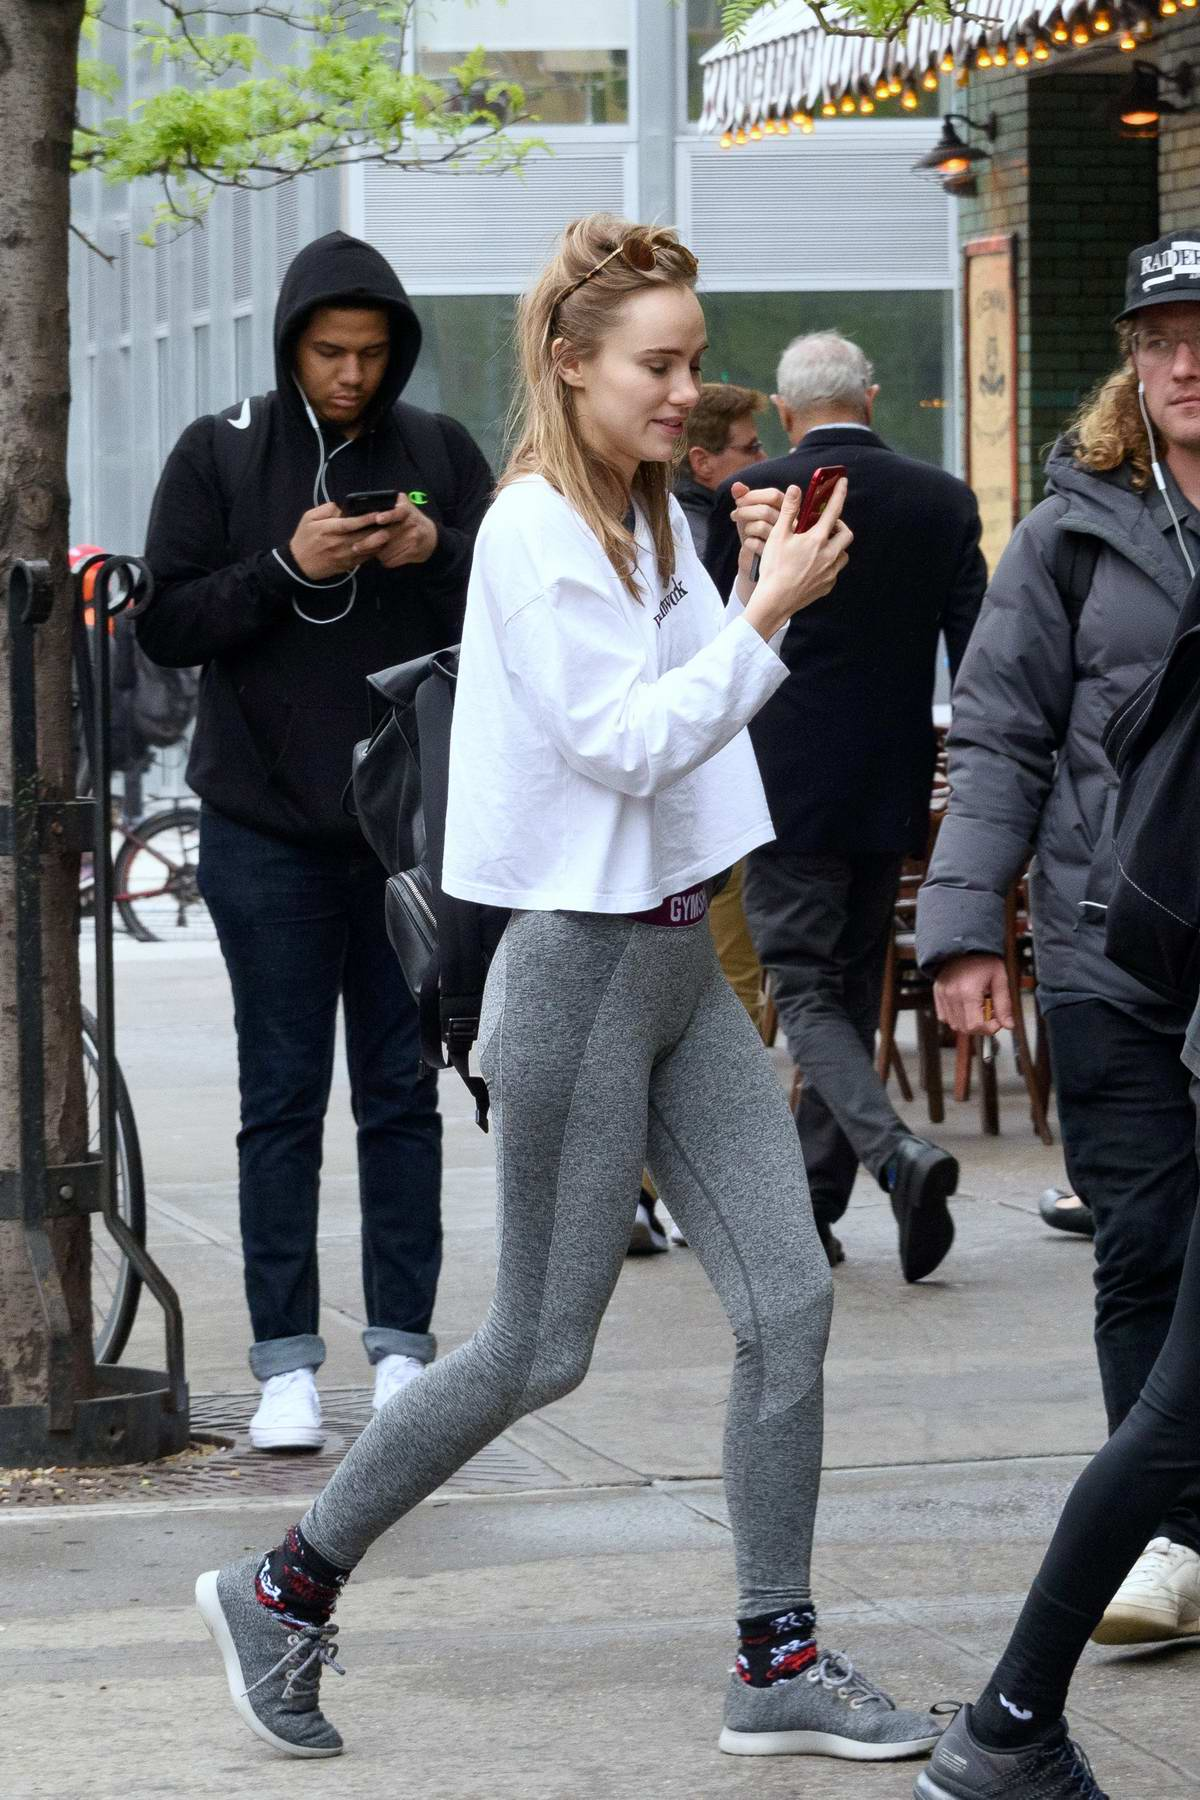 9a010e7db6a52 suki waterhouse sports white top and grey leggings as she leaves after a workout  session in new york city-030519_6